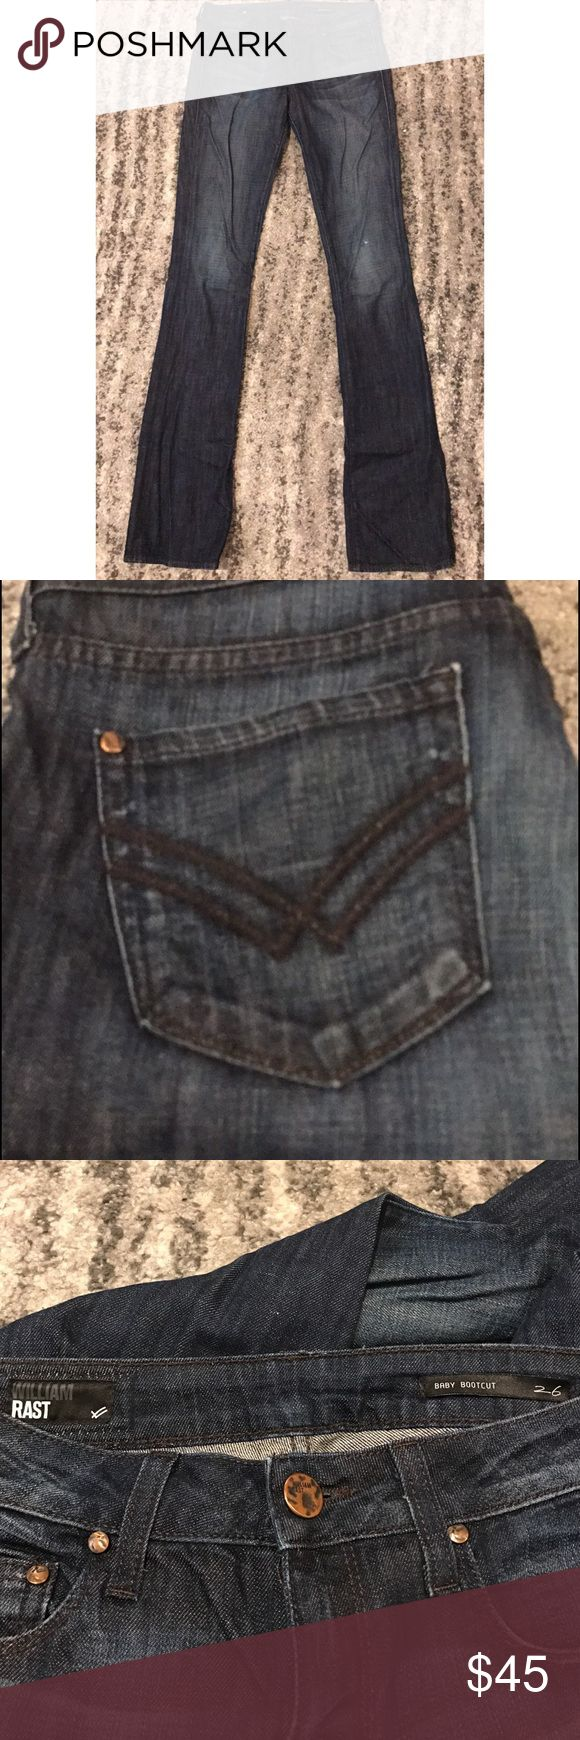 """William Rast baby boot cut jeans William Rast """"baby boot cut"""" jeans! Size 26, 33"""" inseam. PERFECT JEANS! The baby boot cut is perfect to wear with sneakers or flats! Great condition! William Rast Jeans Boot Cut"""